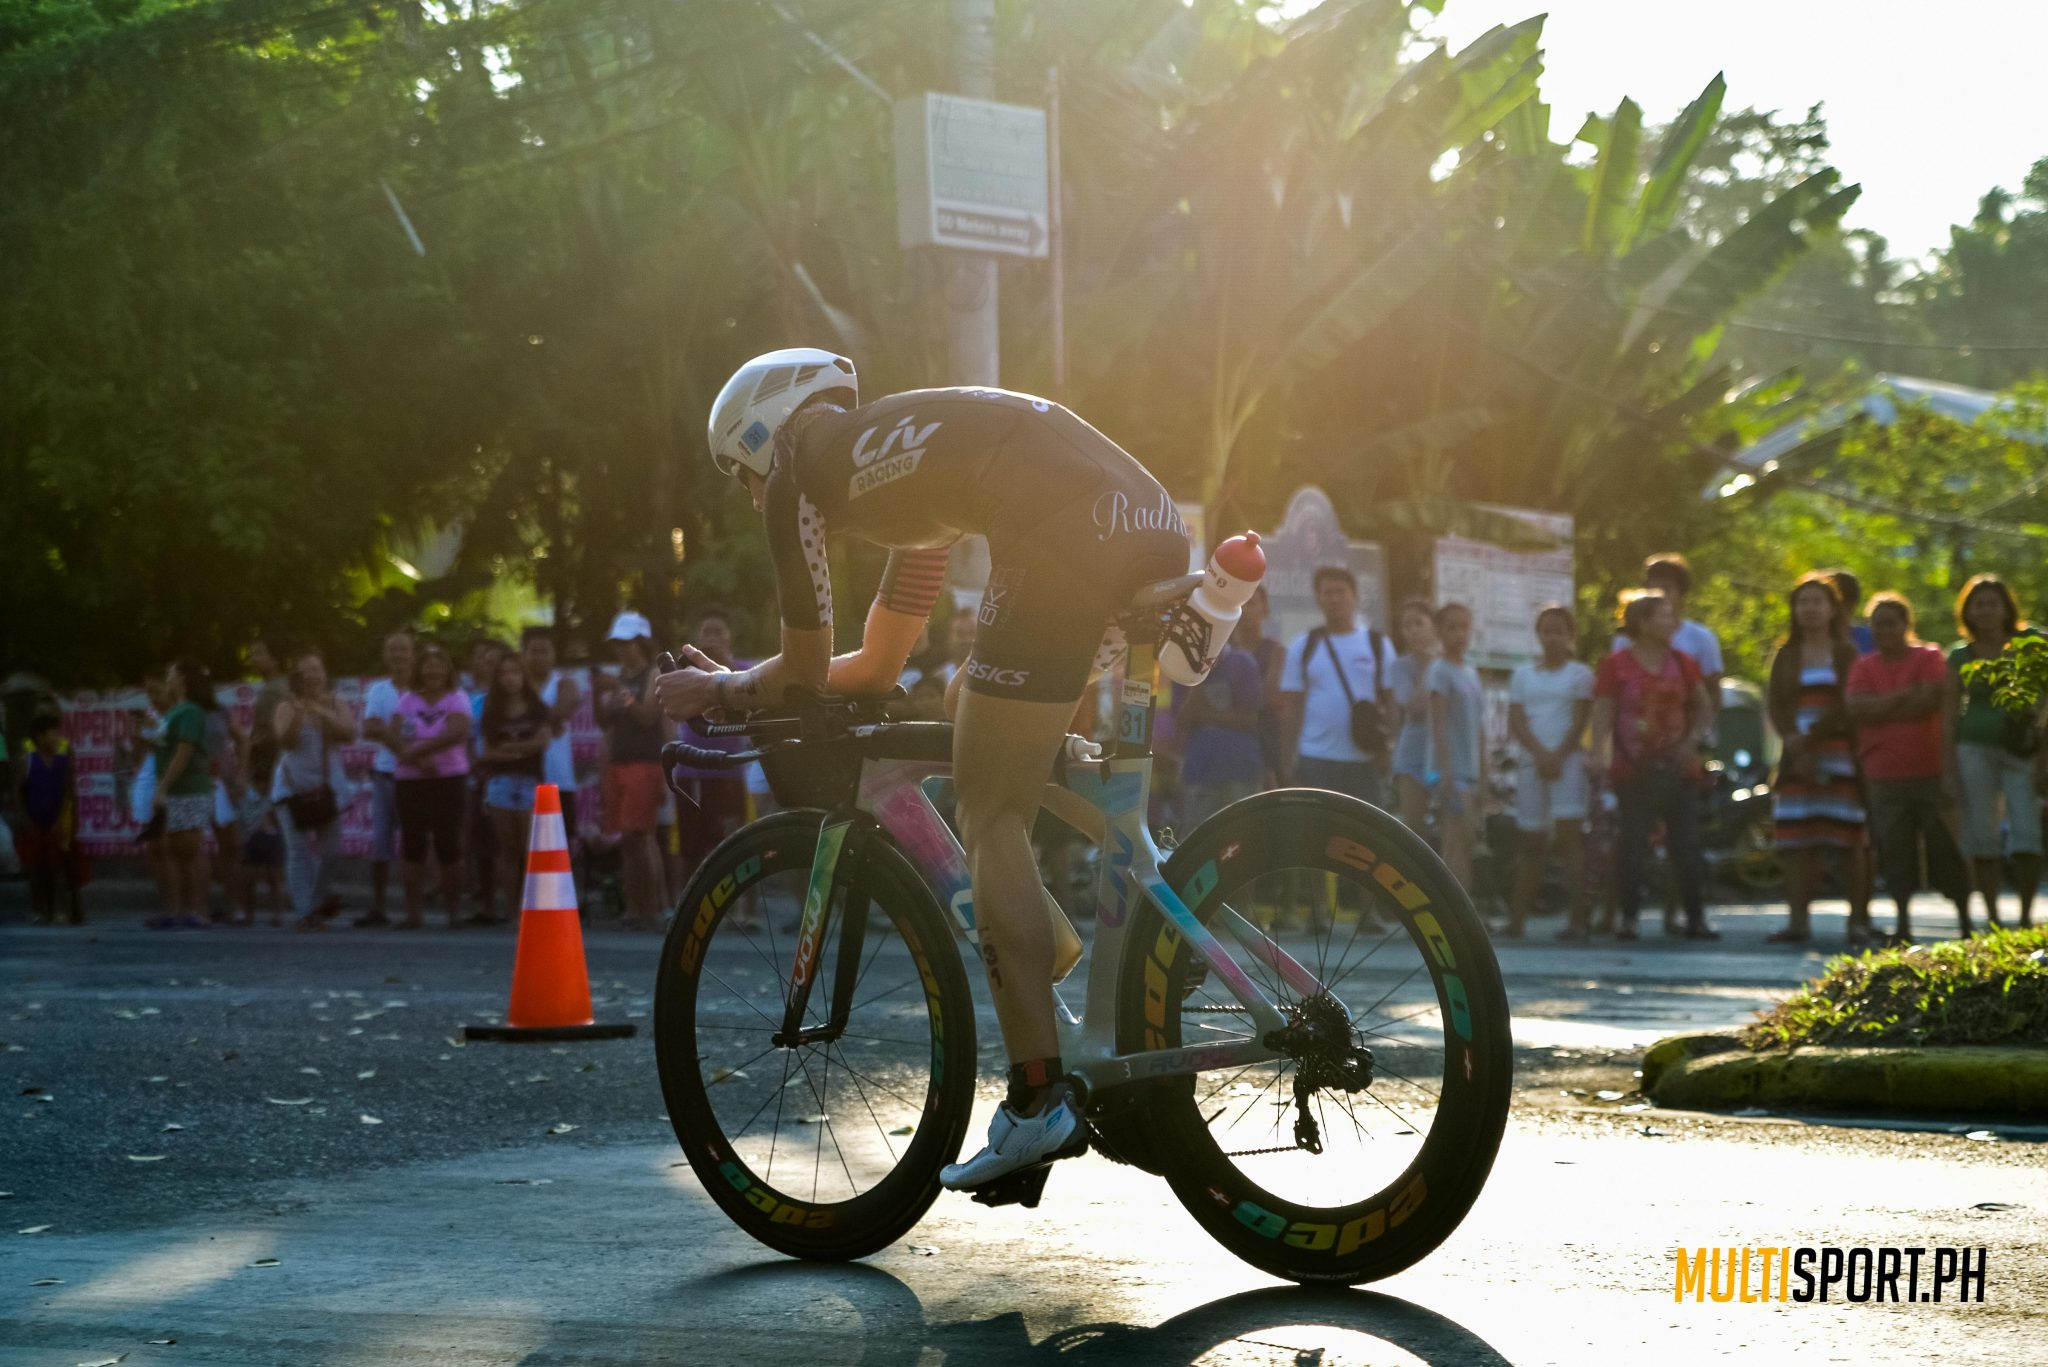 Gallery: 2019 Alveo Ironman 70.3 Davao race day